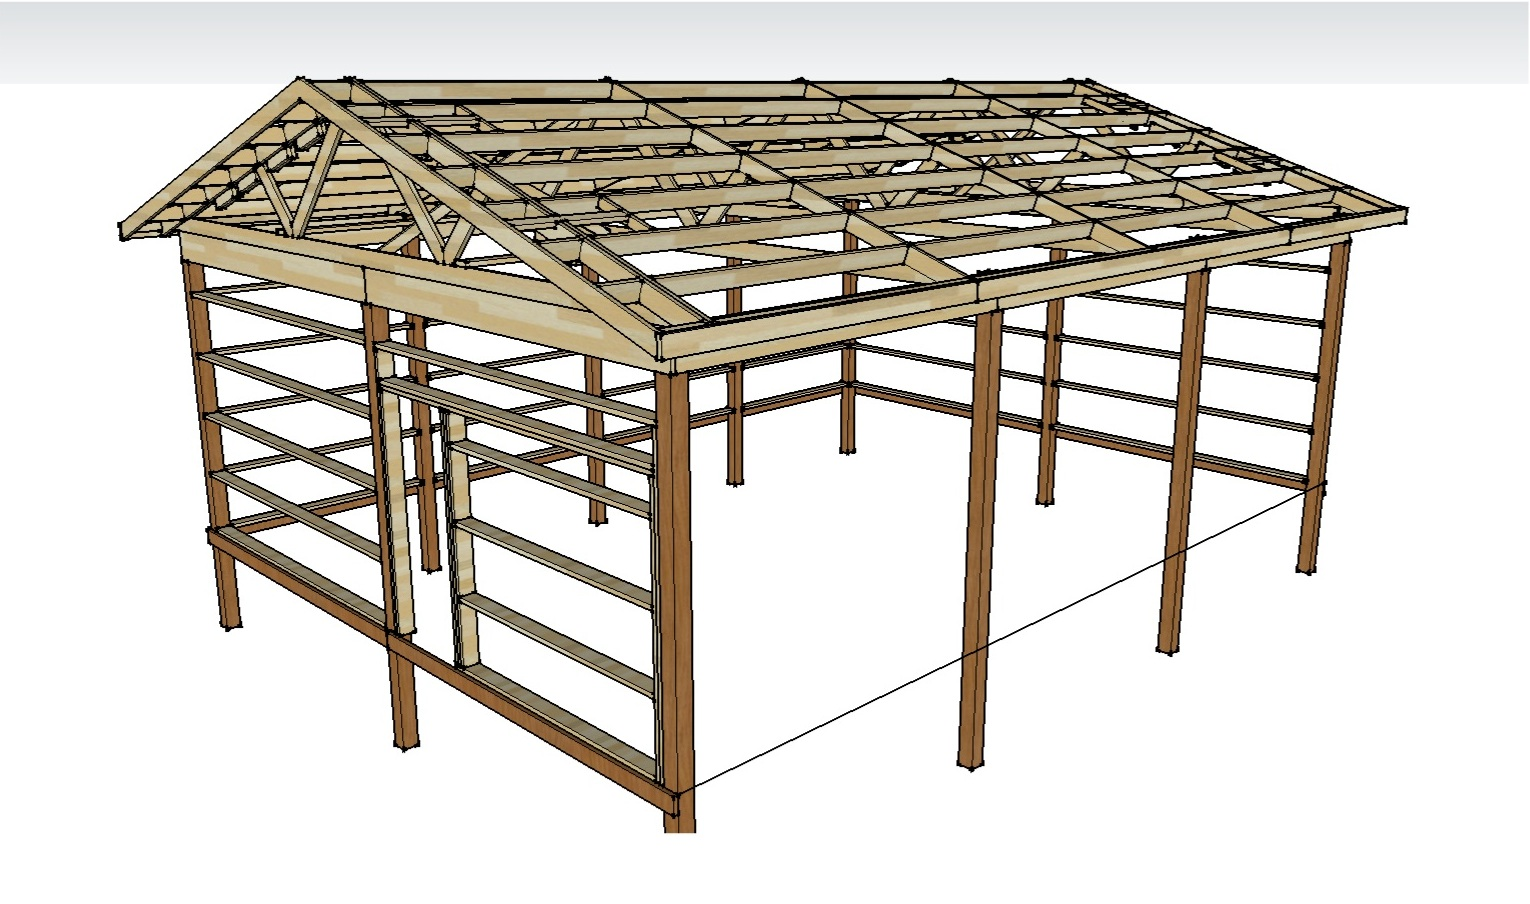 Pole Barn Roofs & Pole Barn Plans And Materials « Redneck ...